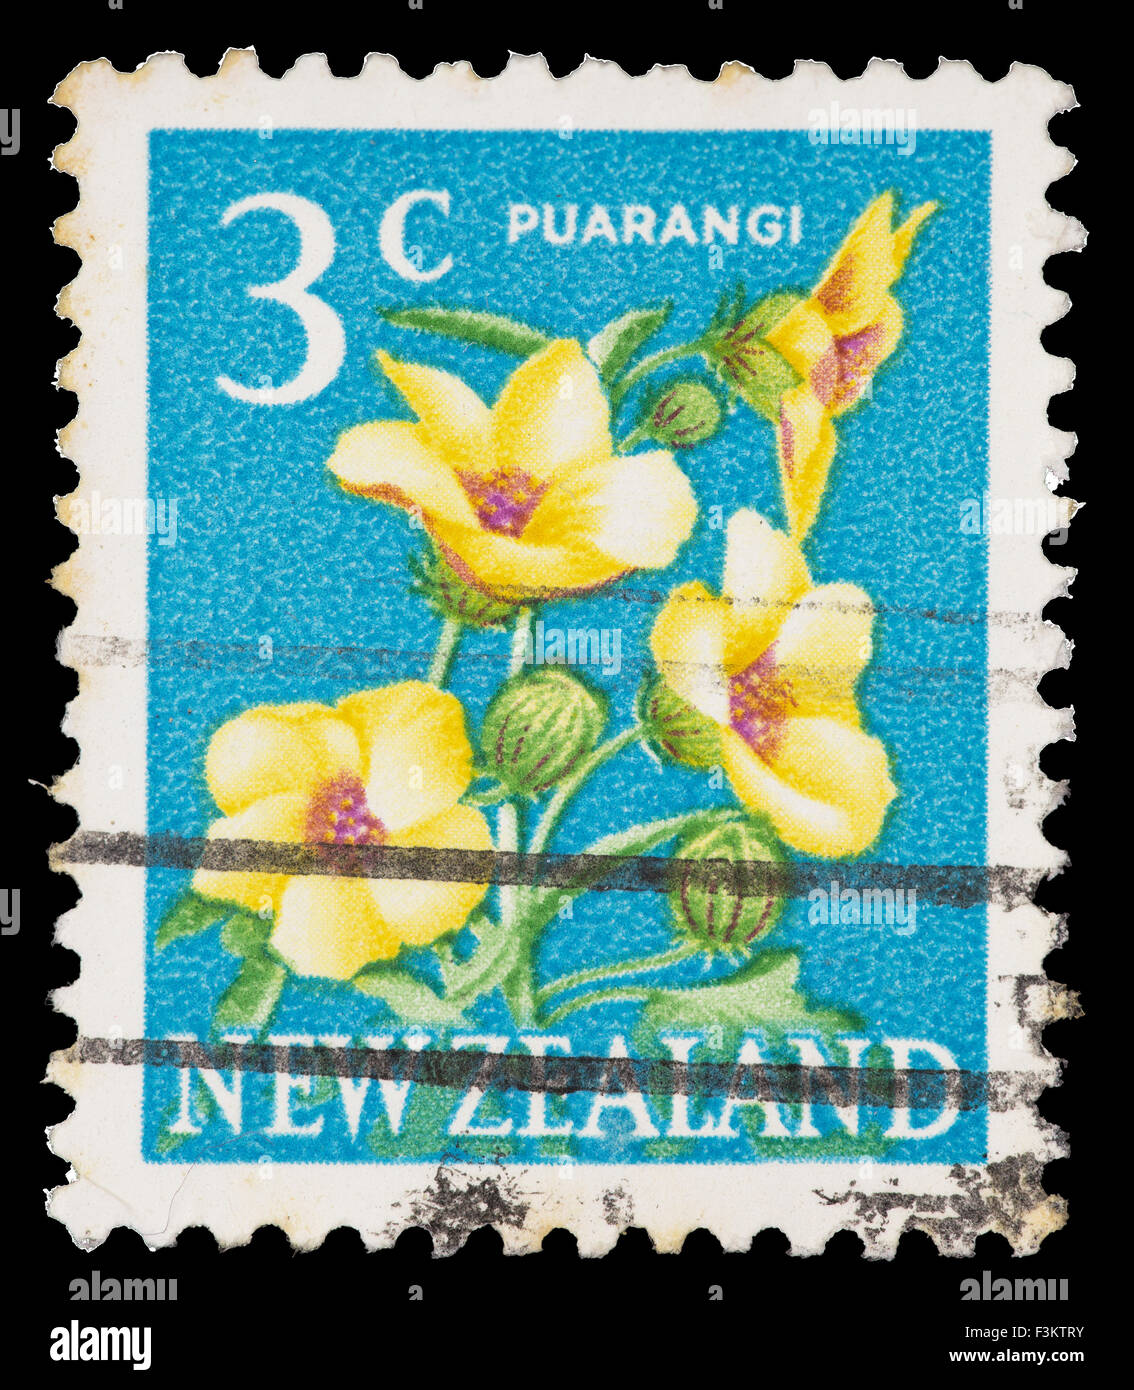 NEW ZEALAND - CIRCA 1967: A postage stamp printed in New Zealand shows a Puarangi flower, Hibiscus richardsonii, Stock Photo